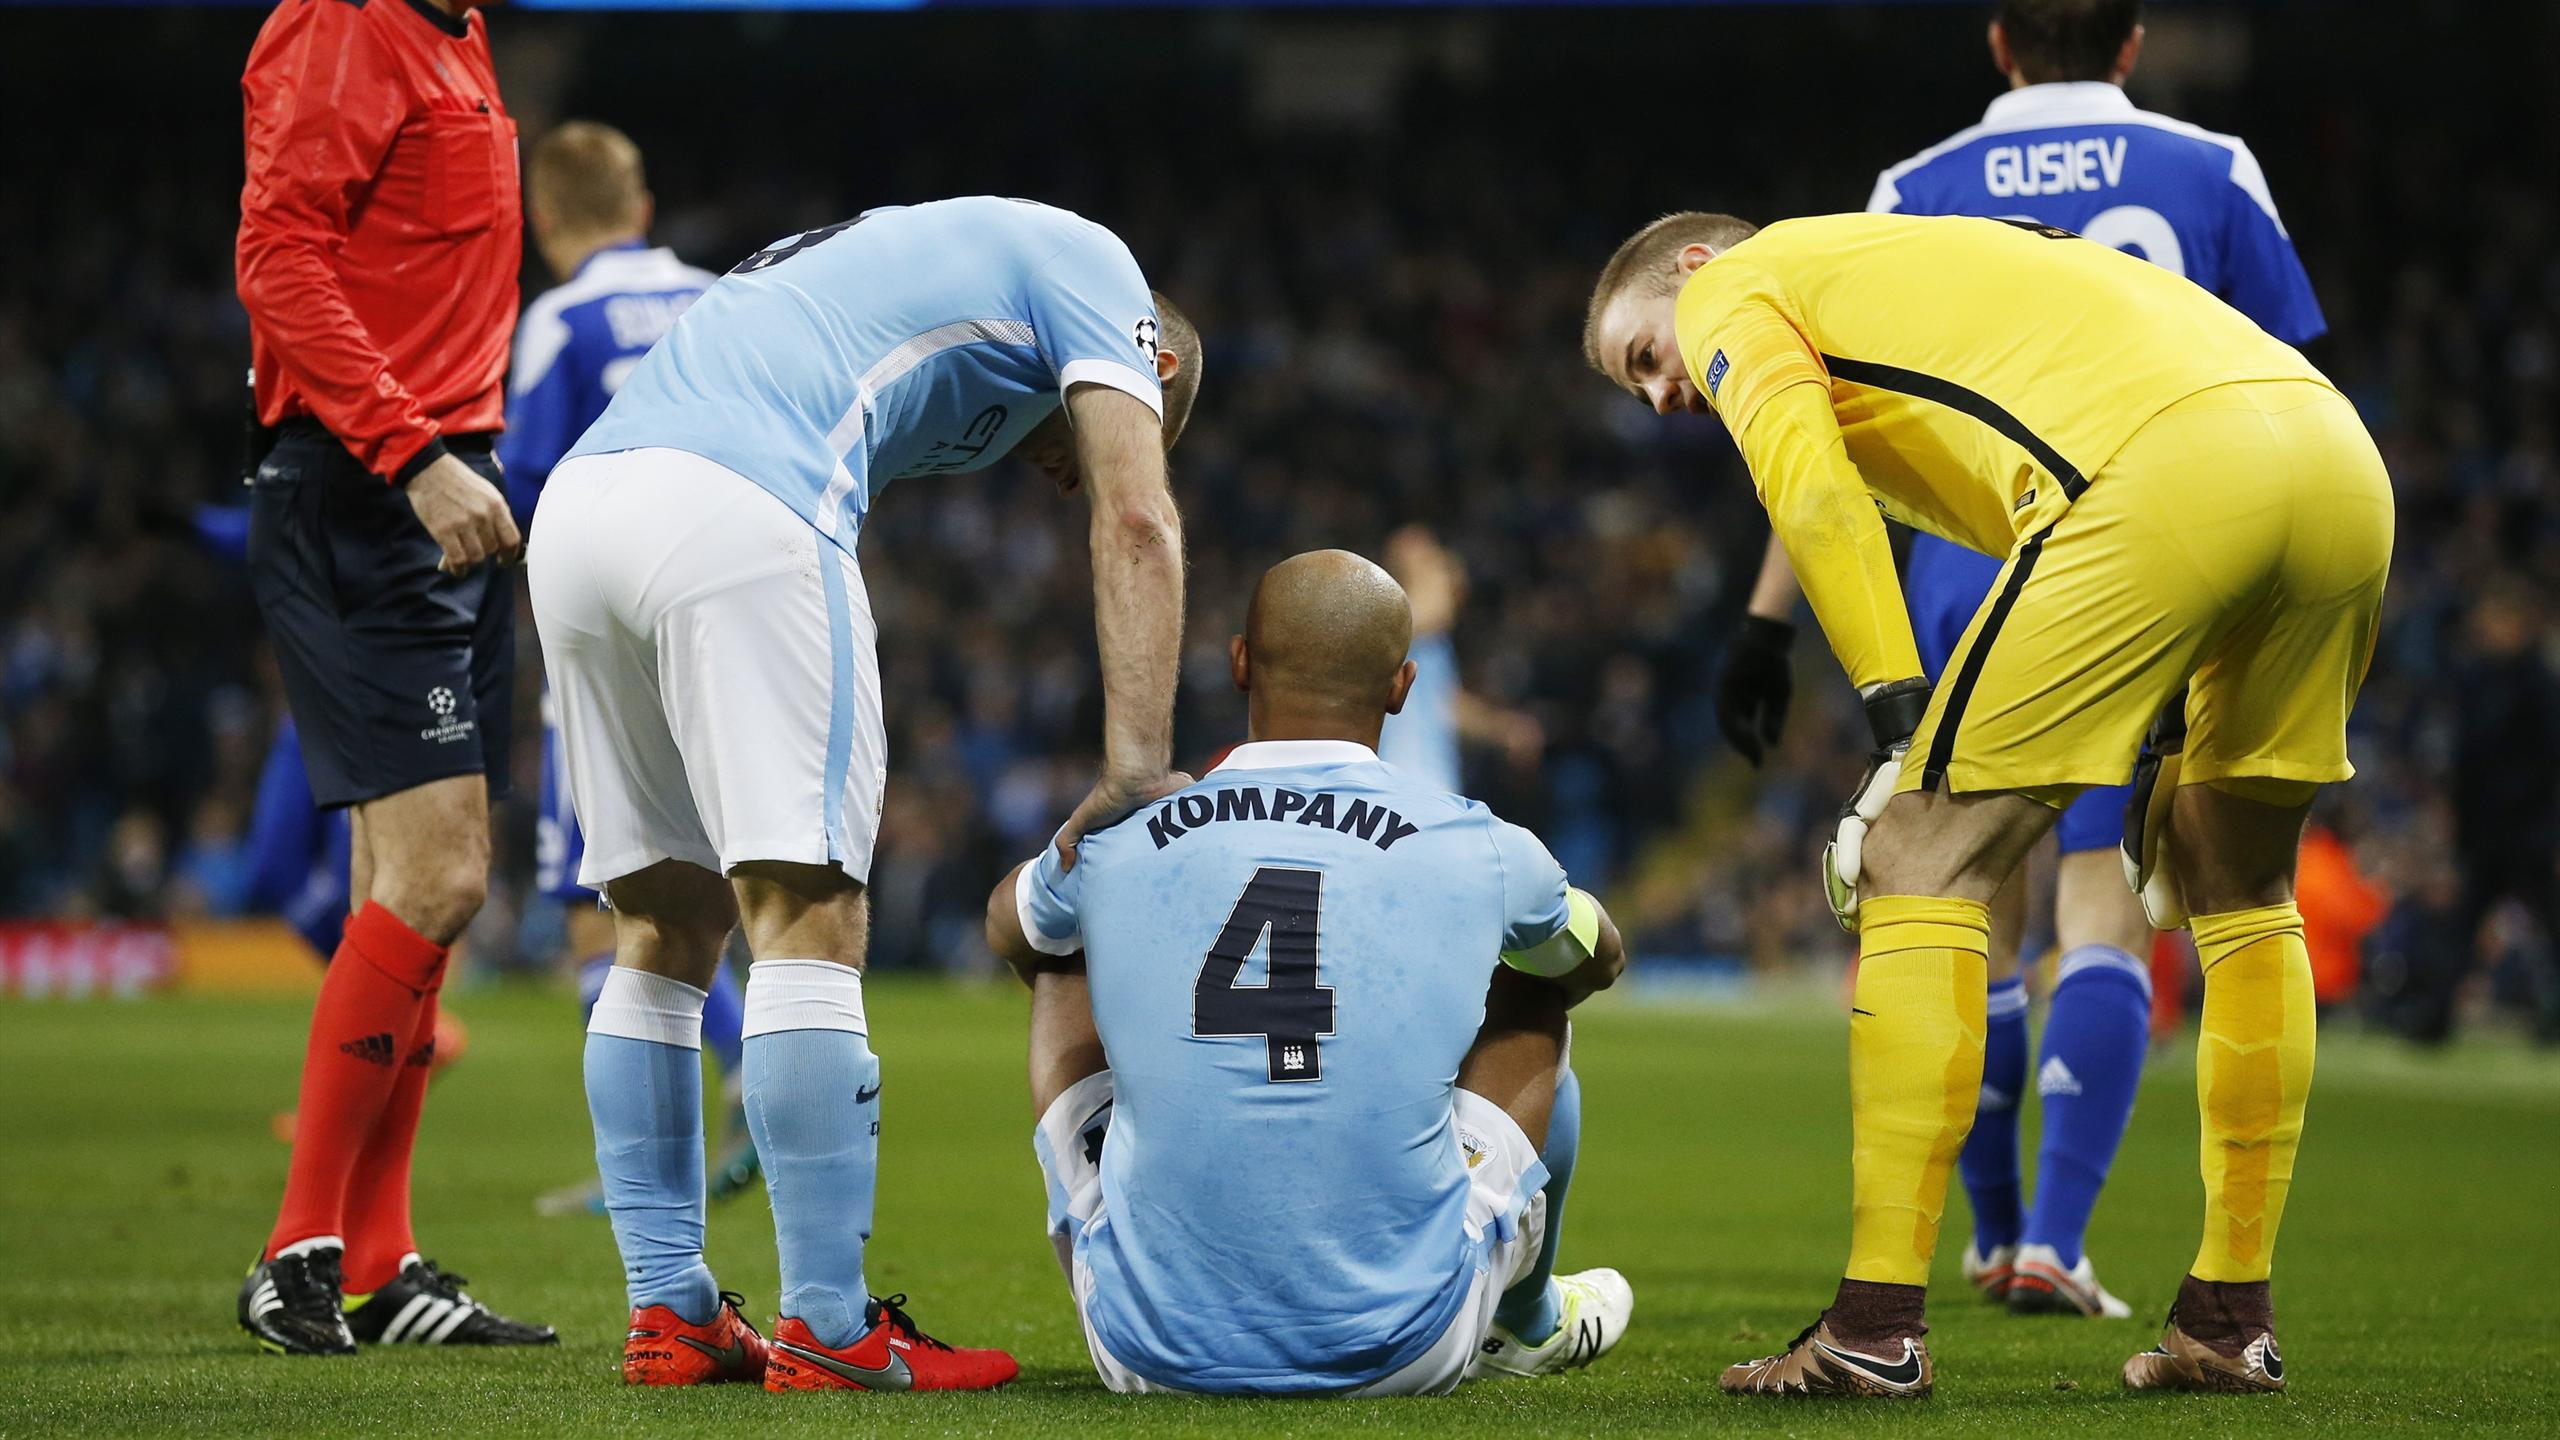 Manchester City's Vincent Kompany looks dejected after sustaining an injury as Joe Hart and Pablo Zabaleta look on